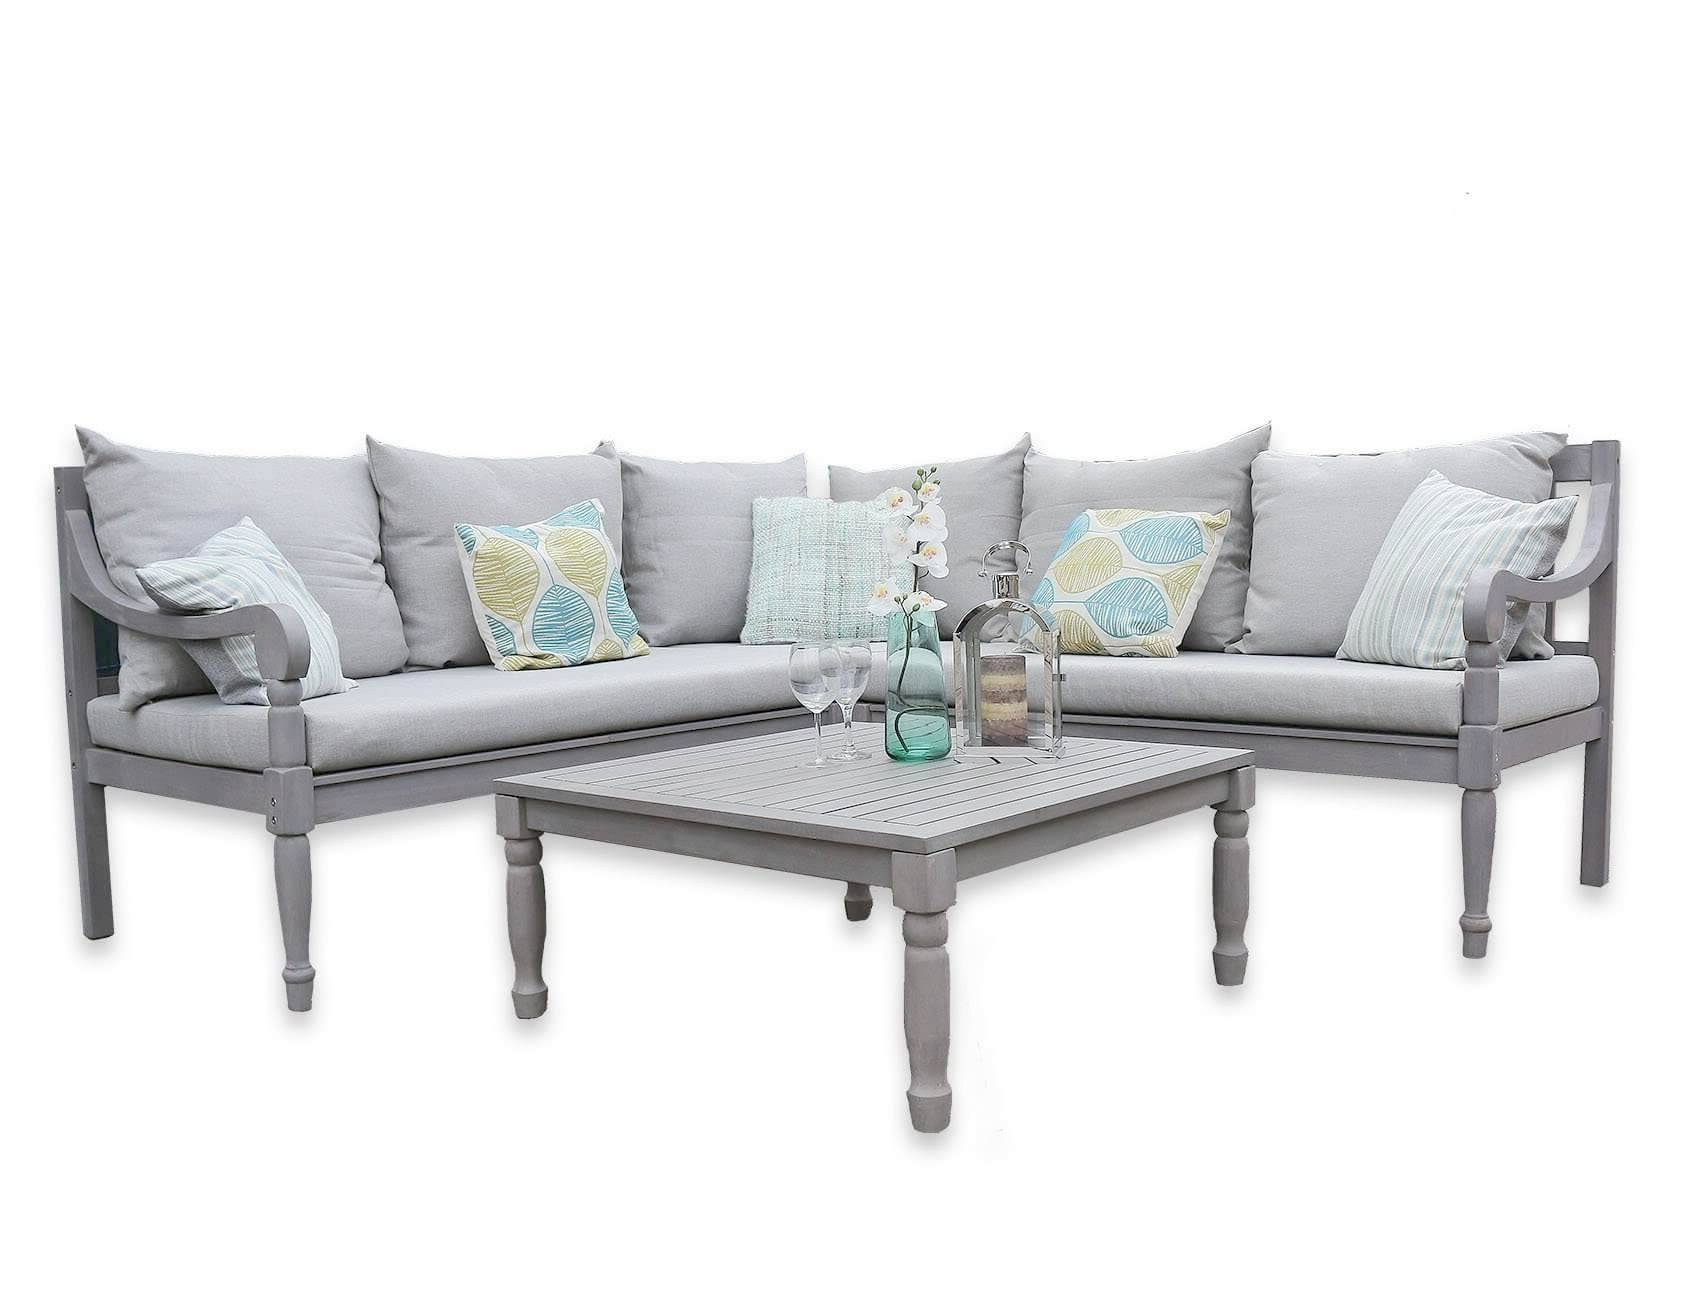 Grey Wash Coffee Table Furniture | Roy Home Design in Gray Wash Coffee Tables (Image 23 of 30)